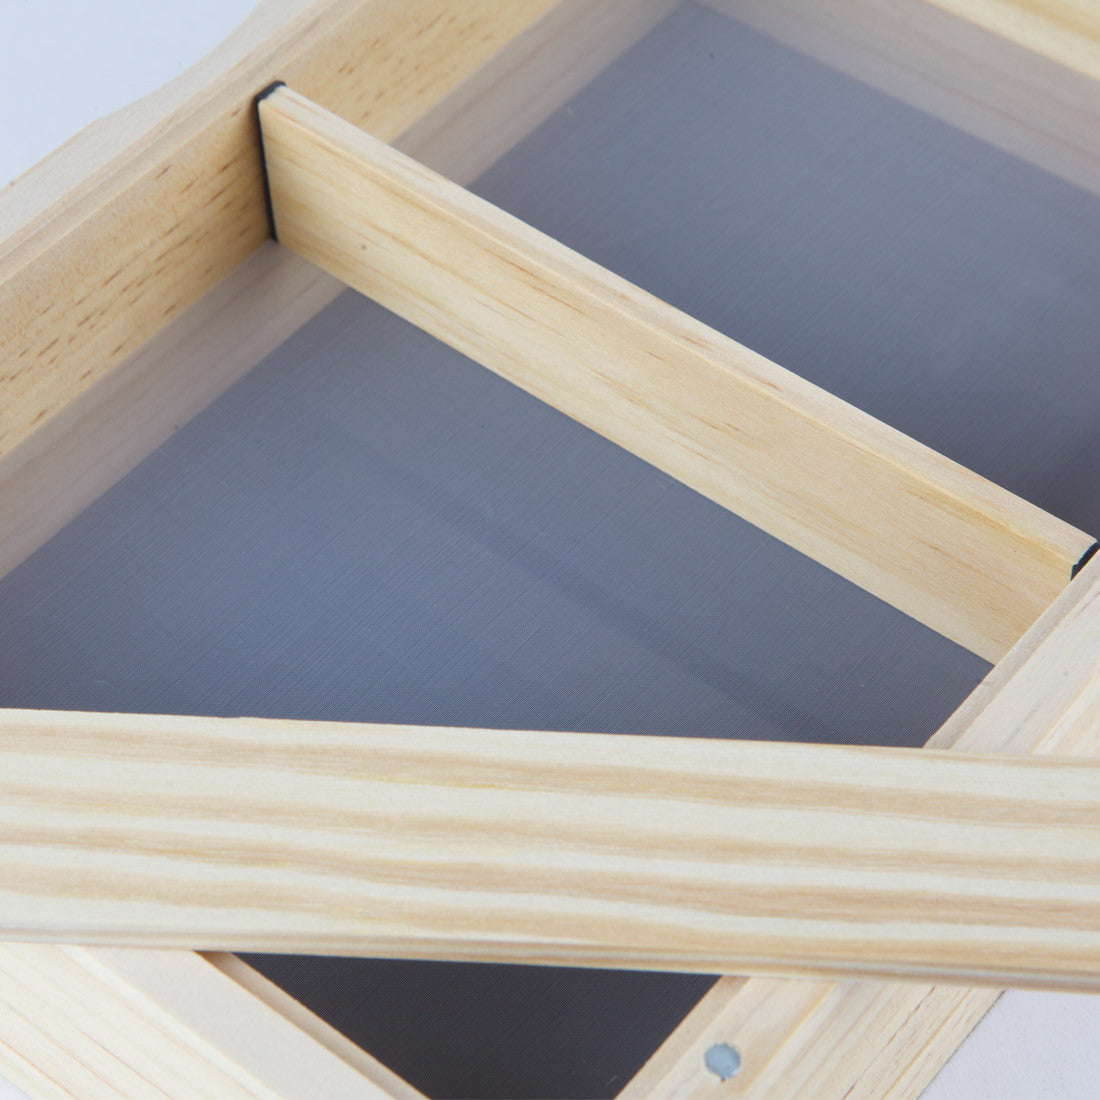 4x7 Glass Top Sifter Box